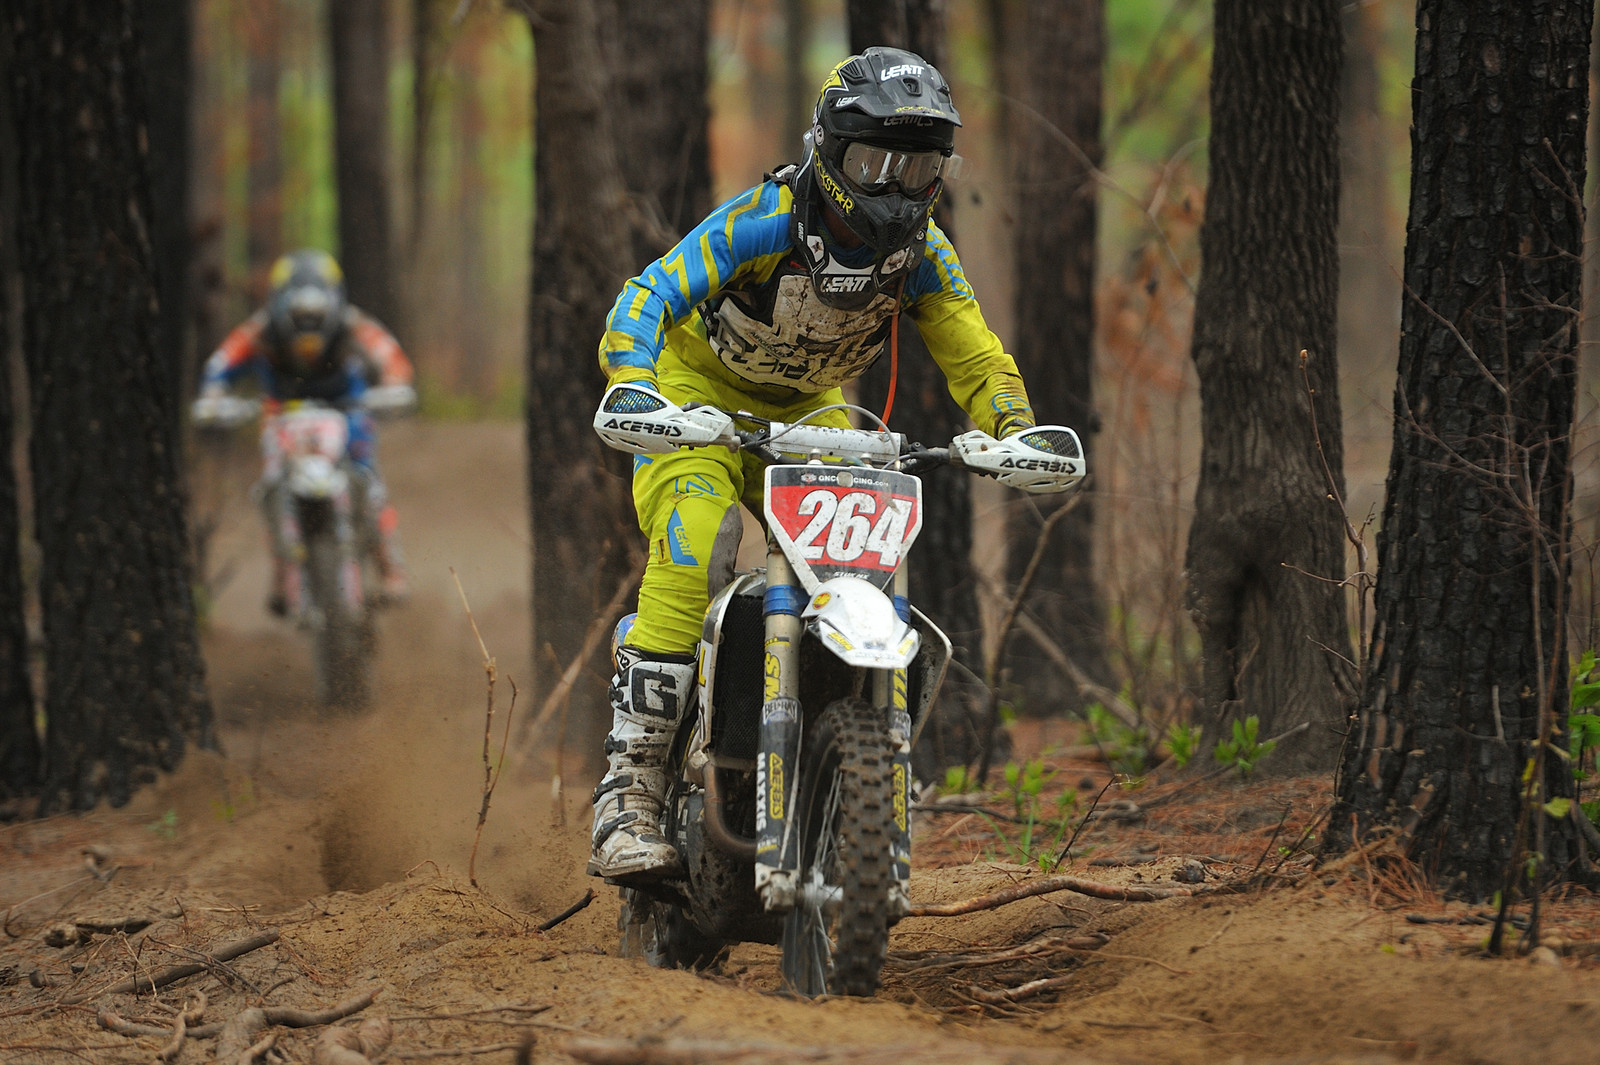 Ryan Sipes - GuyB - Motocross Pictures - Vital MX